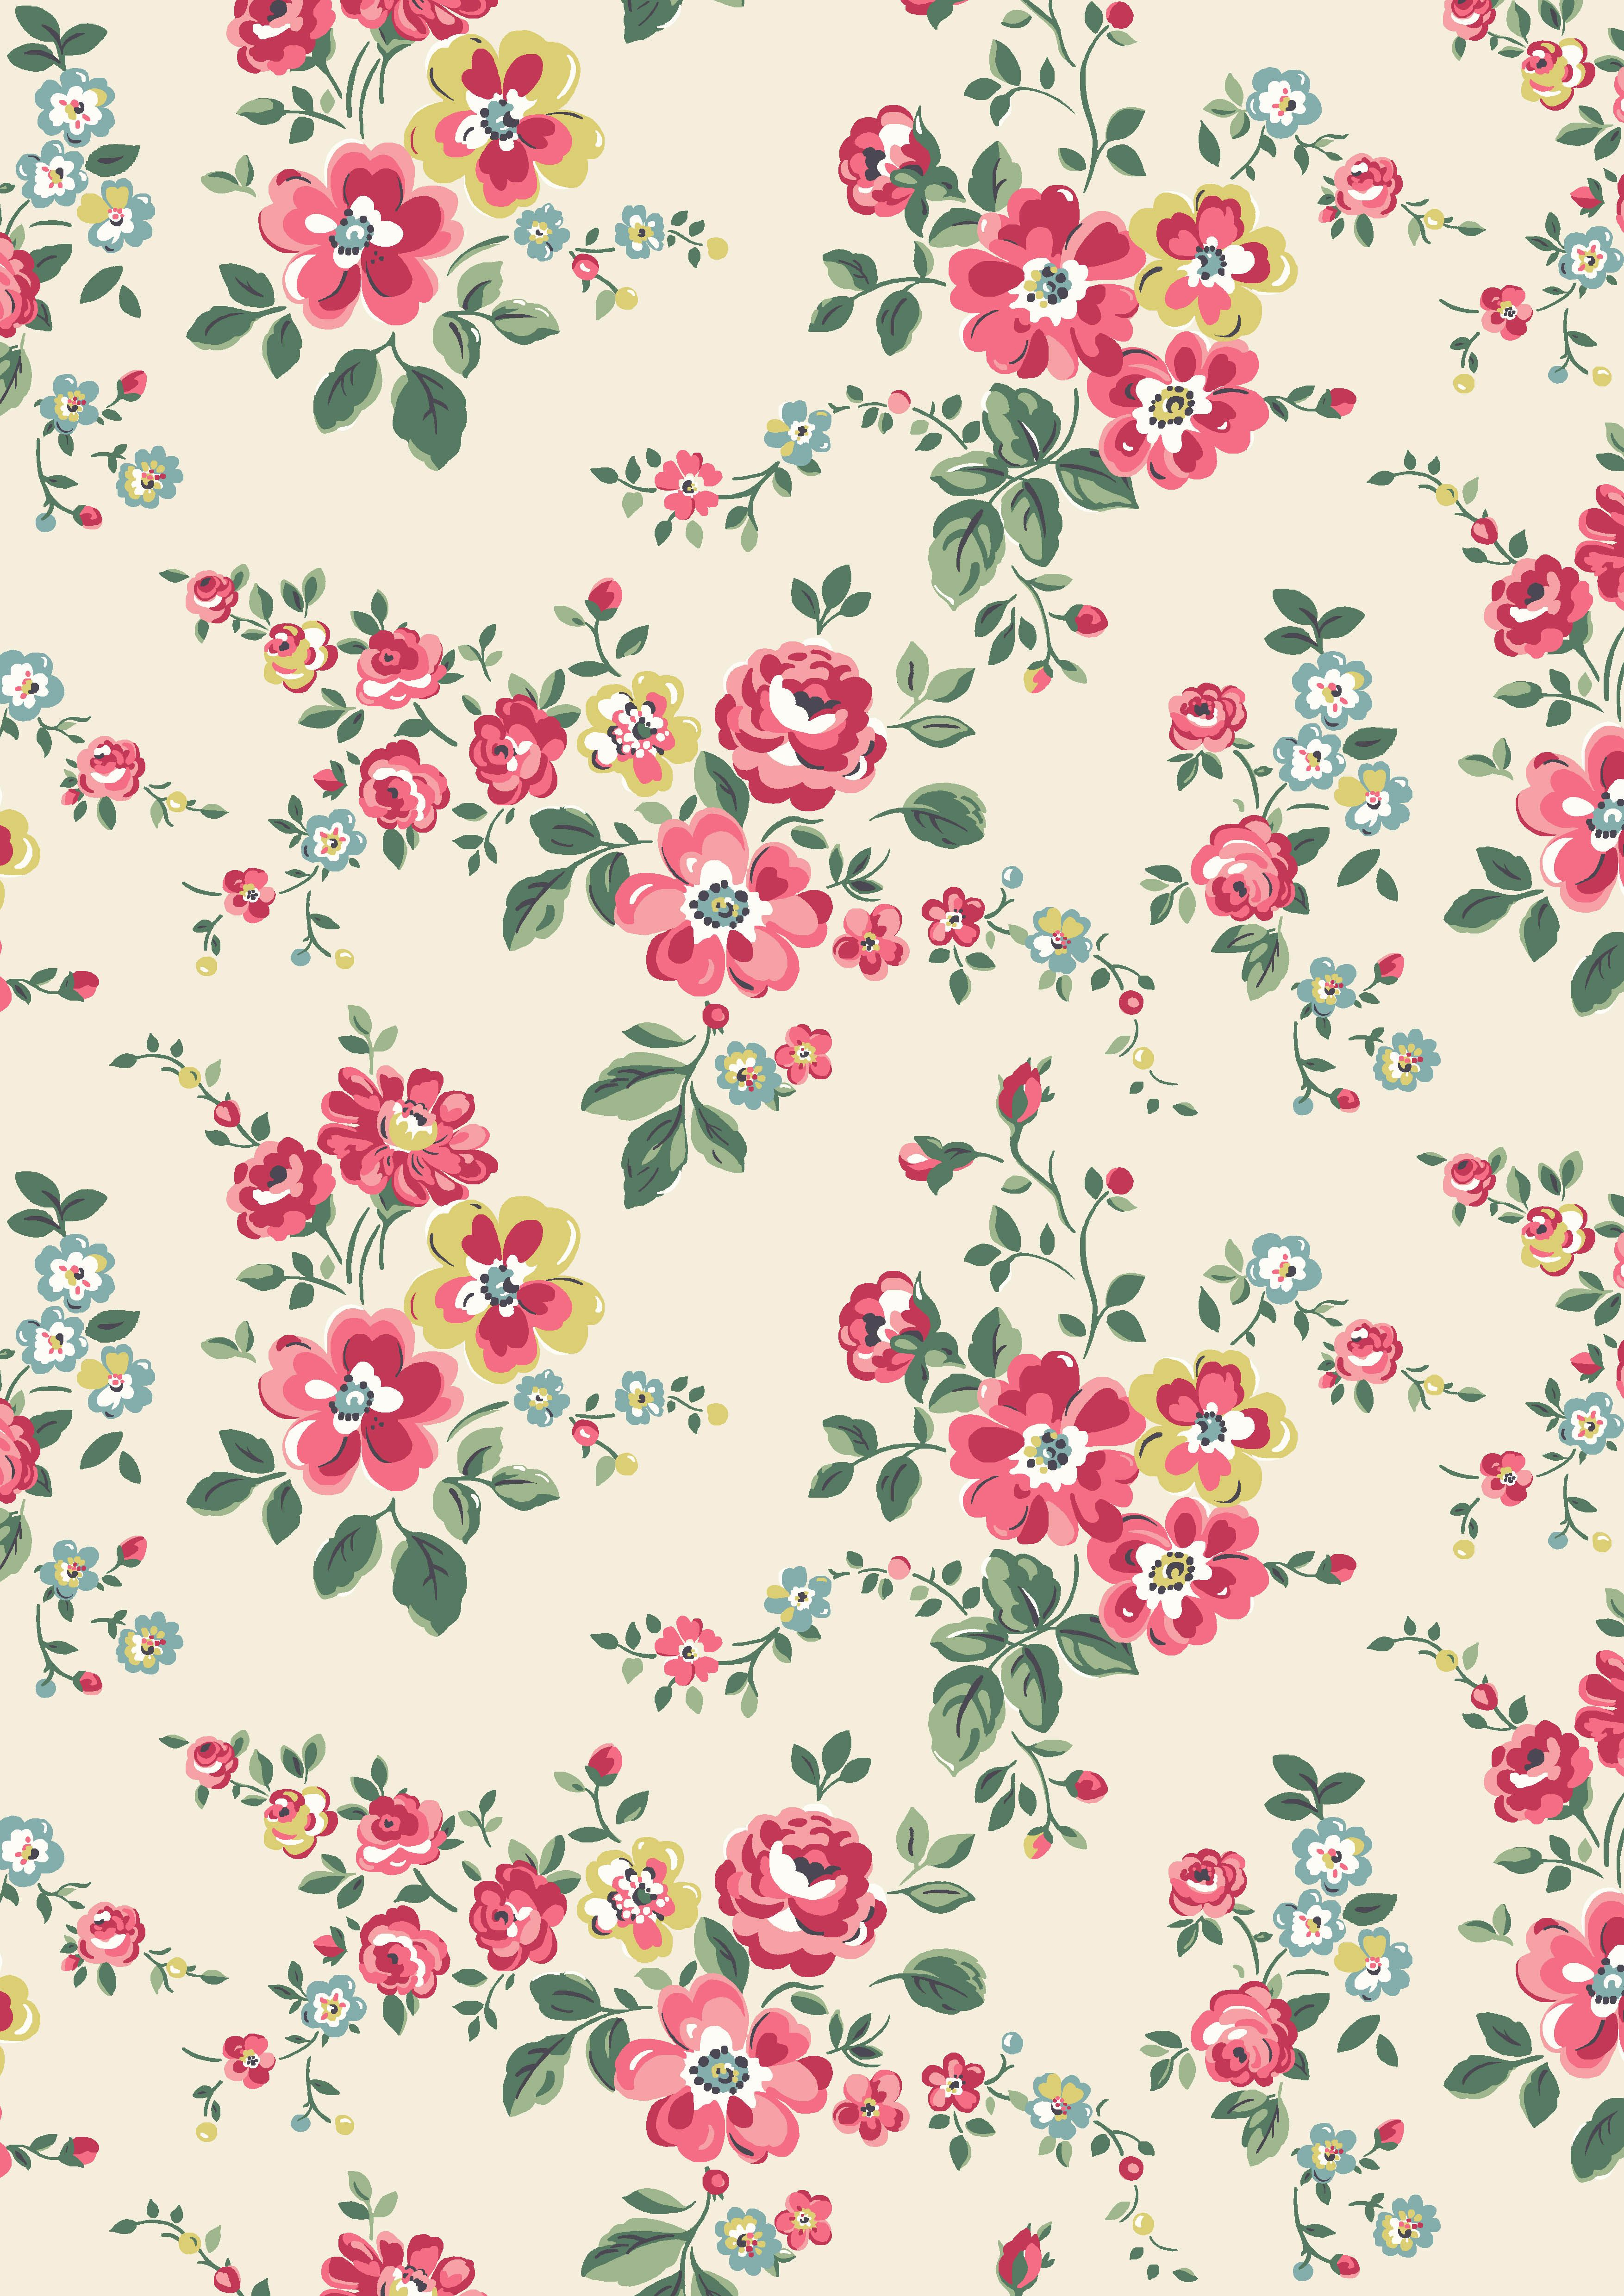 Wallpaper Cath Kidston Iphone Thorp Flowers A Pretty Trailing Floral In Juicy Orchard